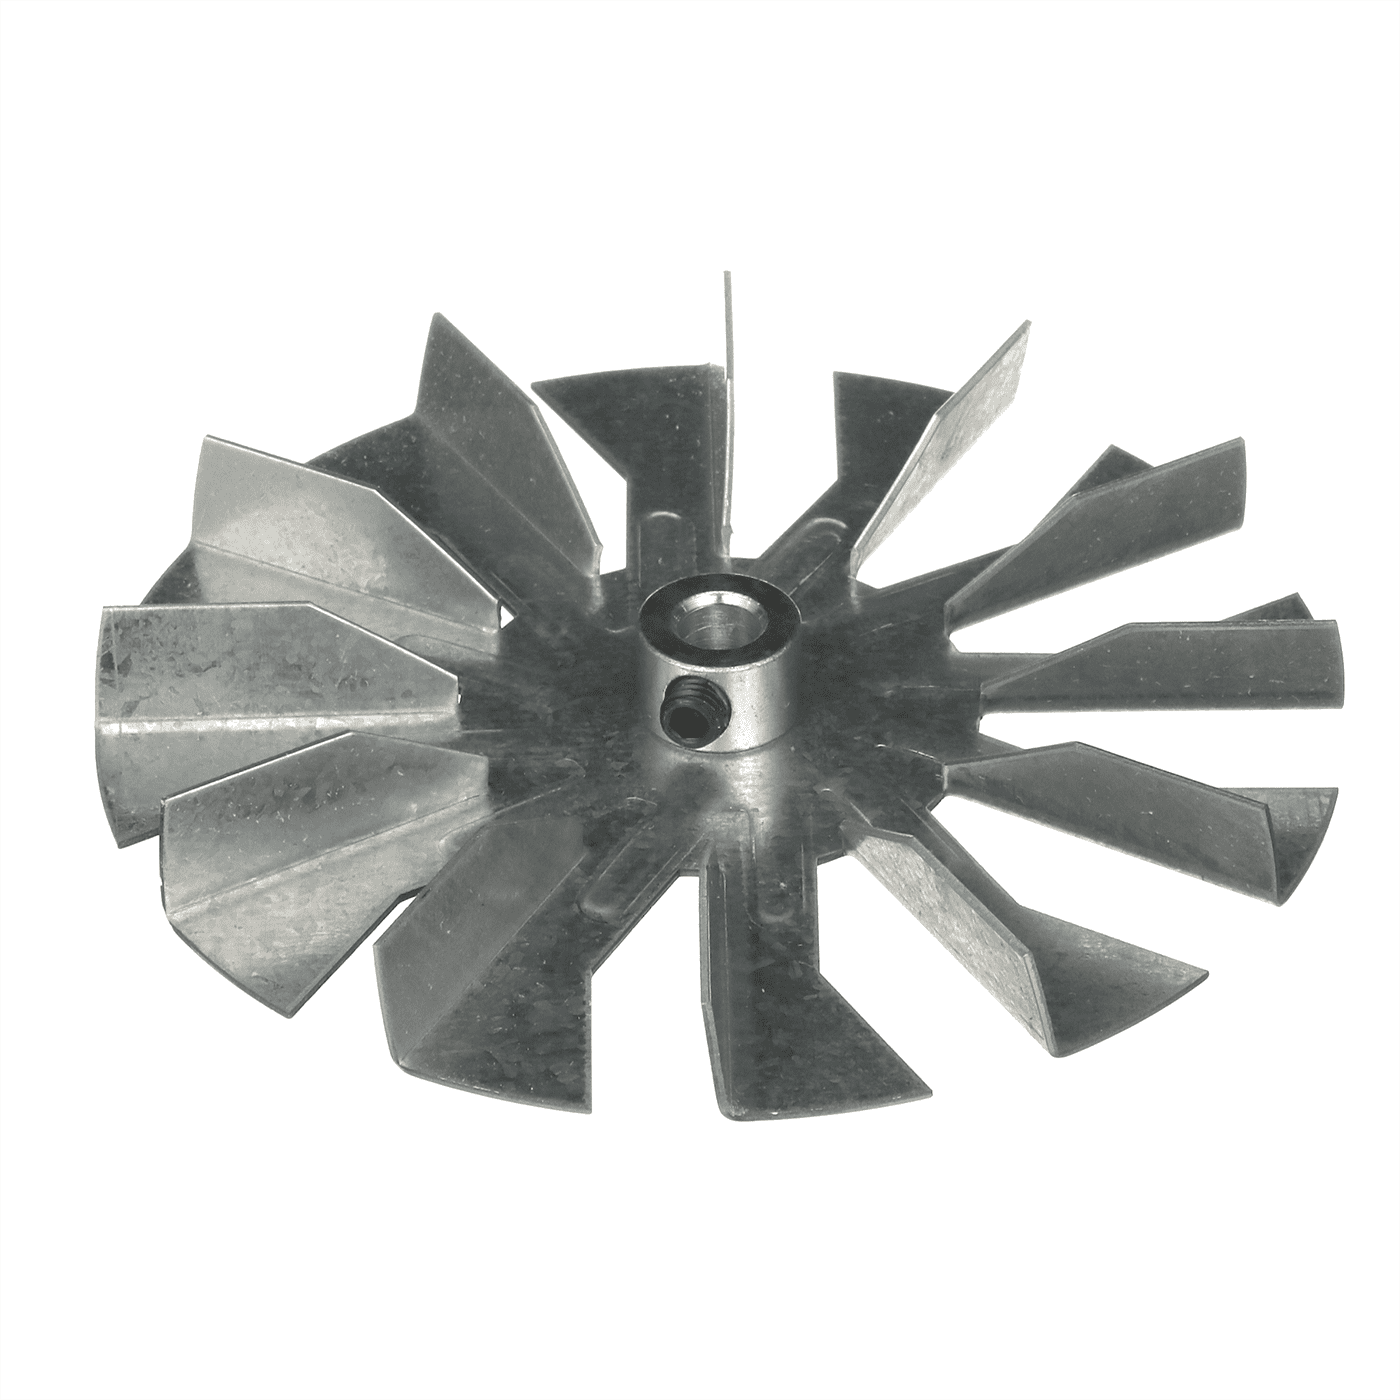 "Harman 4 3/4"" Single Paddle Blade fits P35i & Accentra Ins, 3-21-00661"